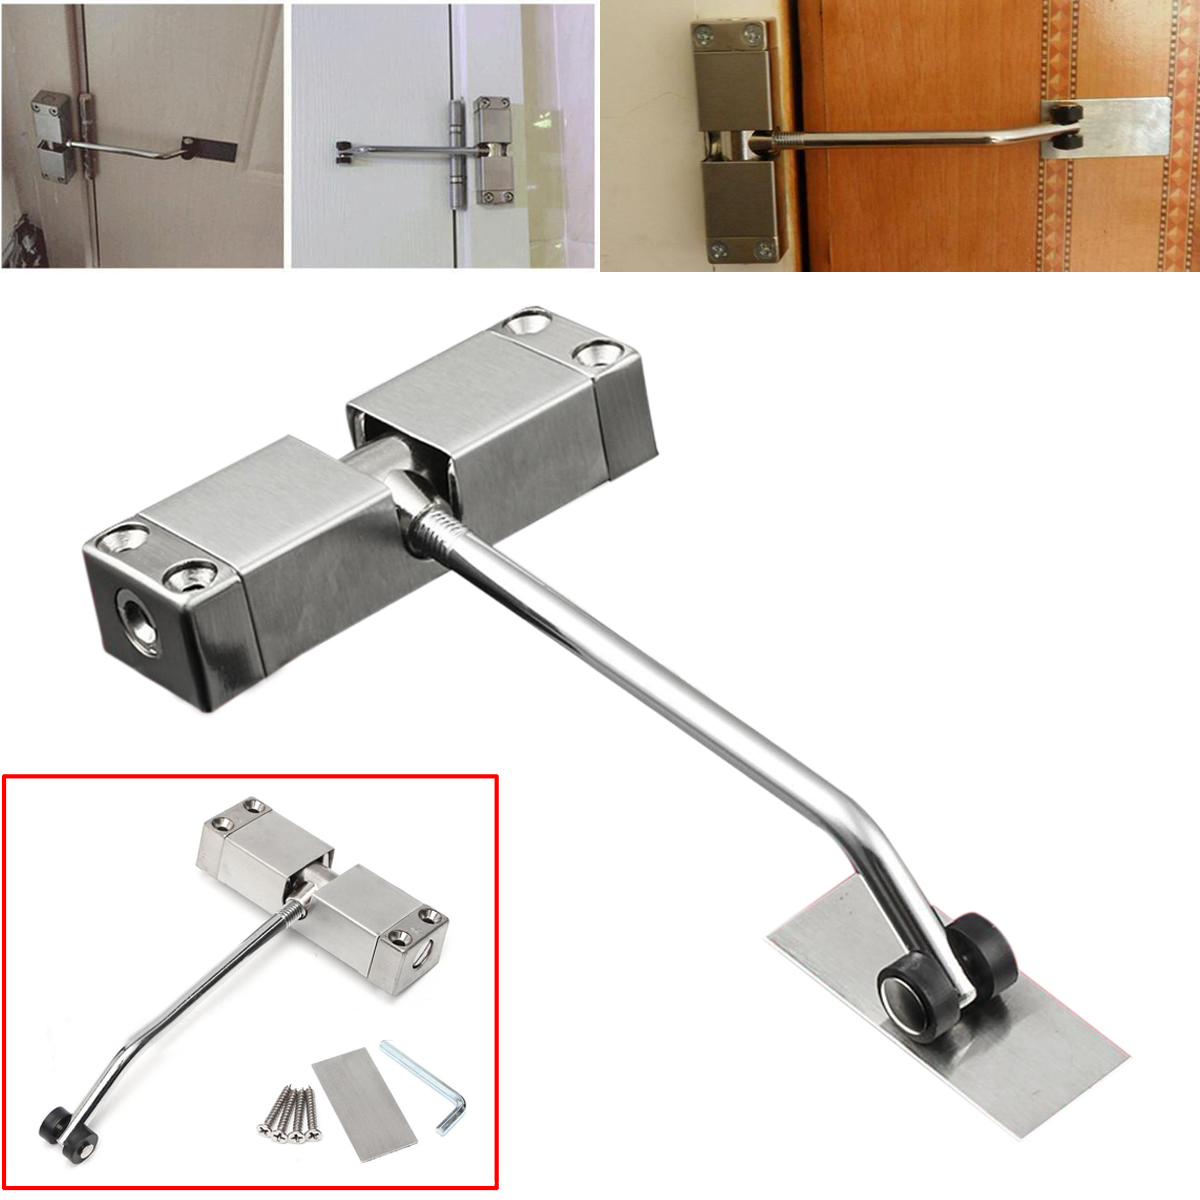 DSHA 1pc Automatic Mounted Spring Door Closer Stainless Steel Adjustable Surface Door Closer 160x96x20mm 1pc automatic mounted spring door closer stainless steel adjustable surface door closer 160x96x20mm page 8